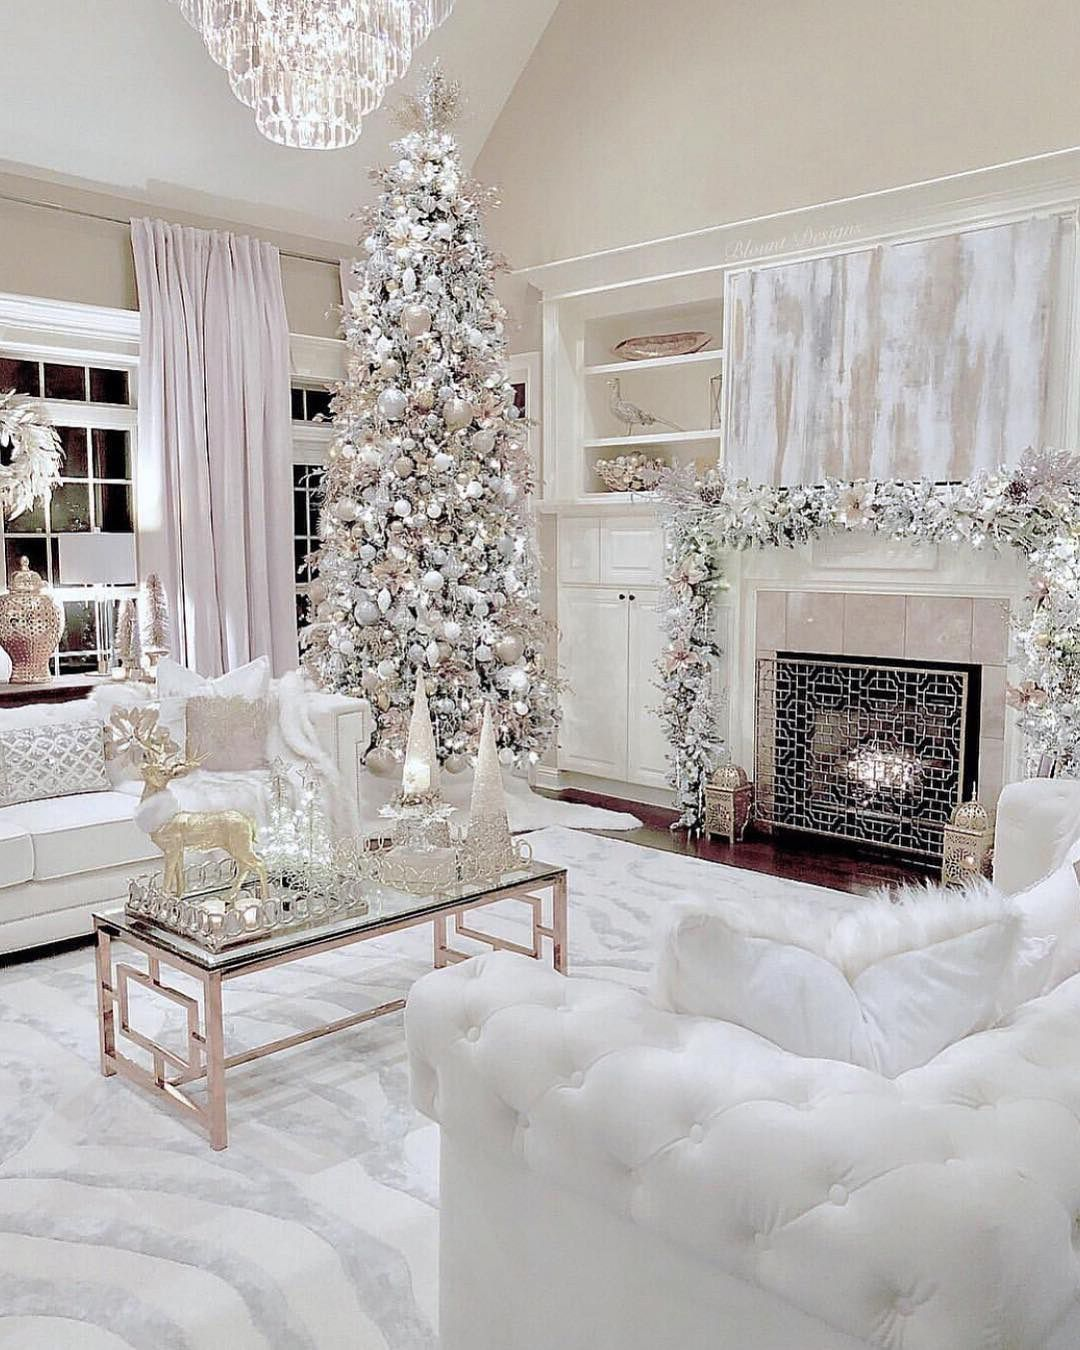 Pin By Mabel Colon On Home Decor White Christmas Decor Winter Home Decor Silver Christmas Decorations